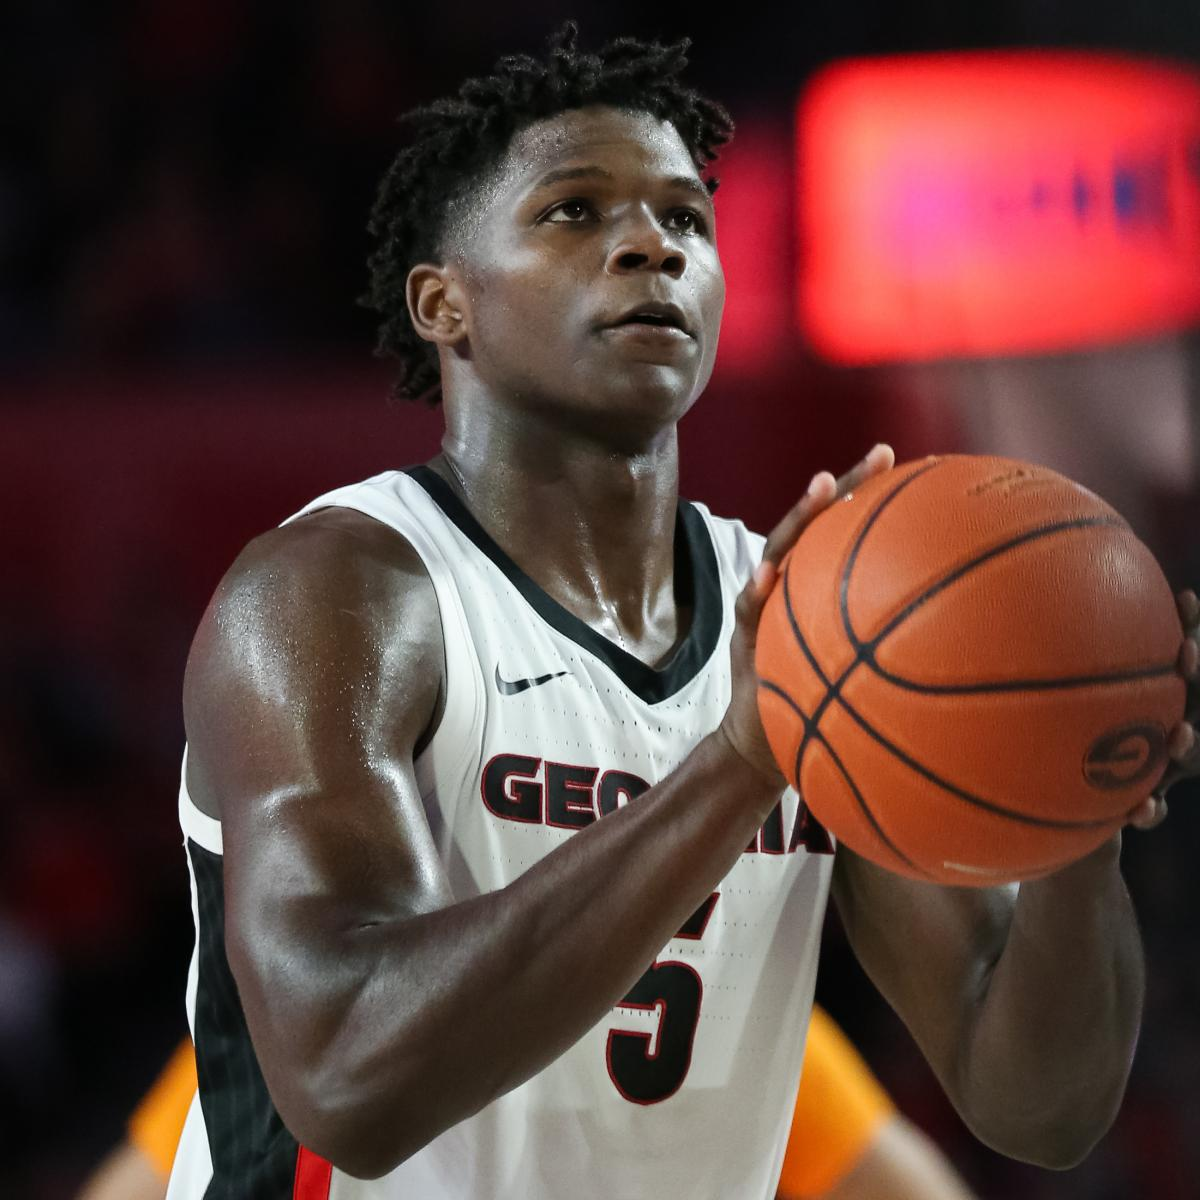 2020 NBA Mock Draft: Best Fits for Anthony Edwards and Top Prospects